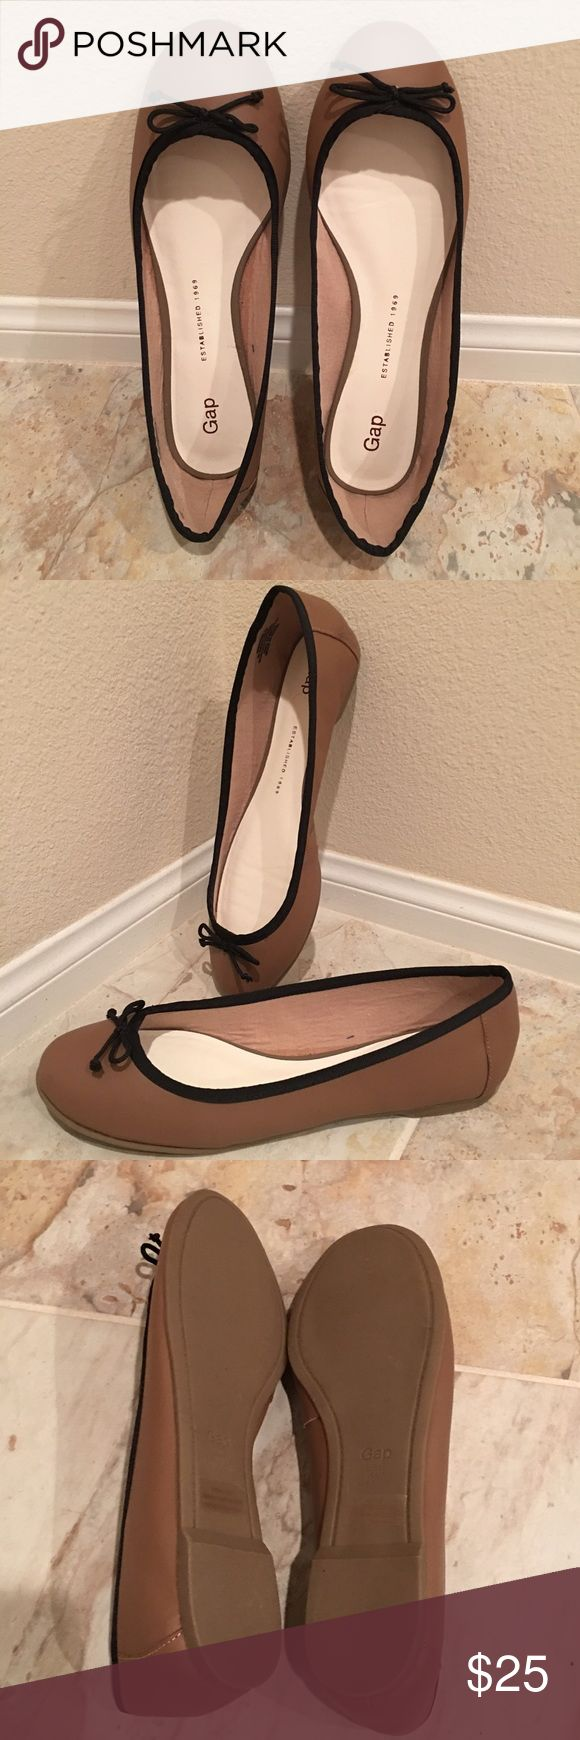 Gap Leather Ballet Shoe Mushroom color with black bow. New. No box. GAP Shoes